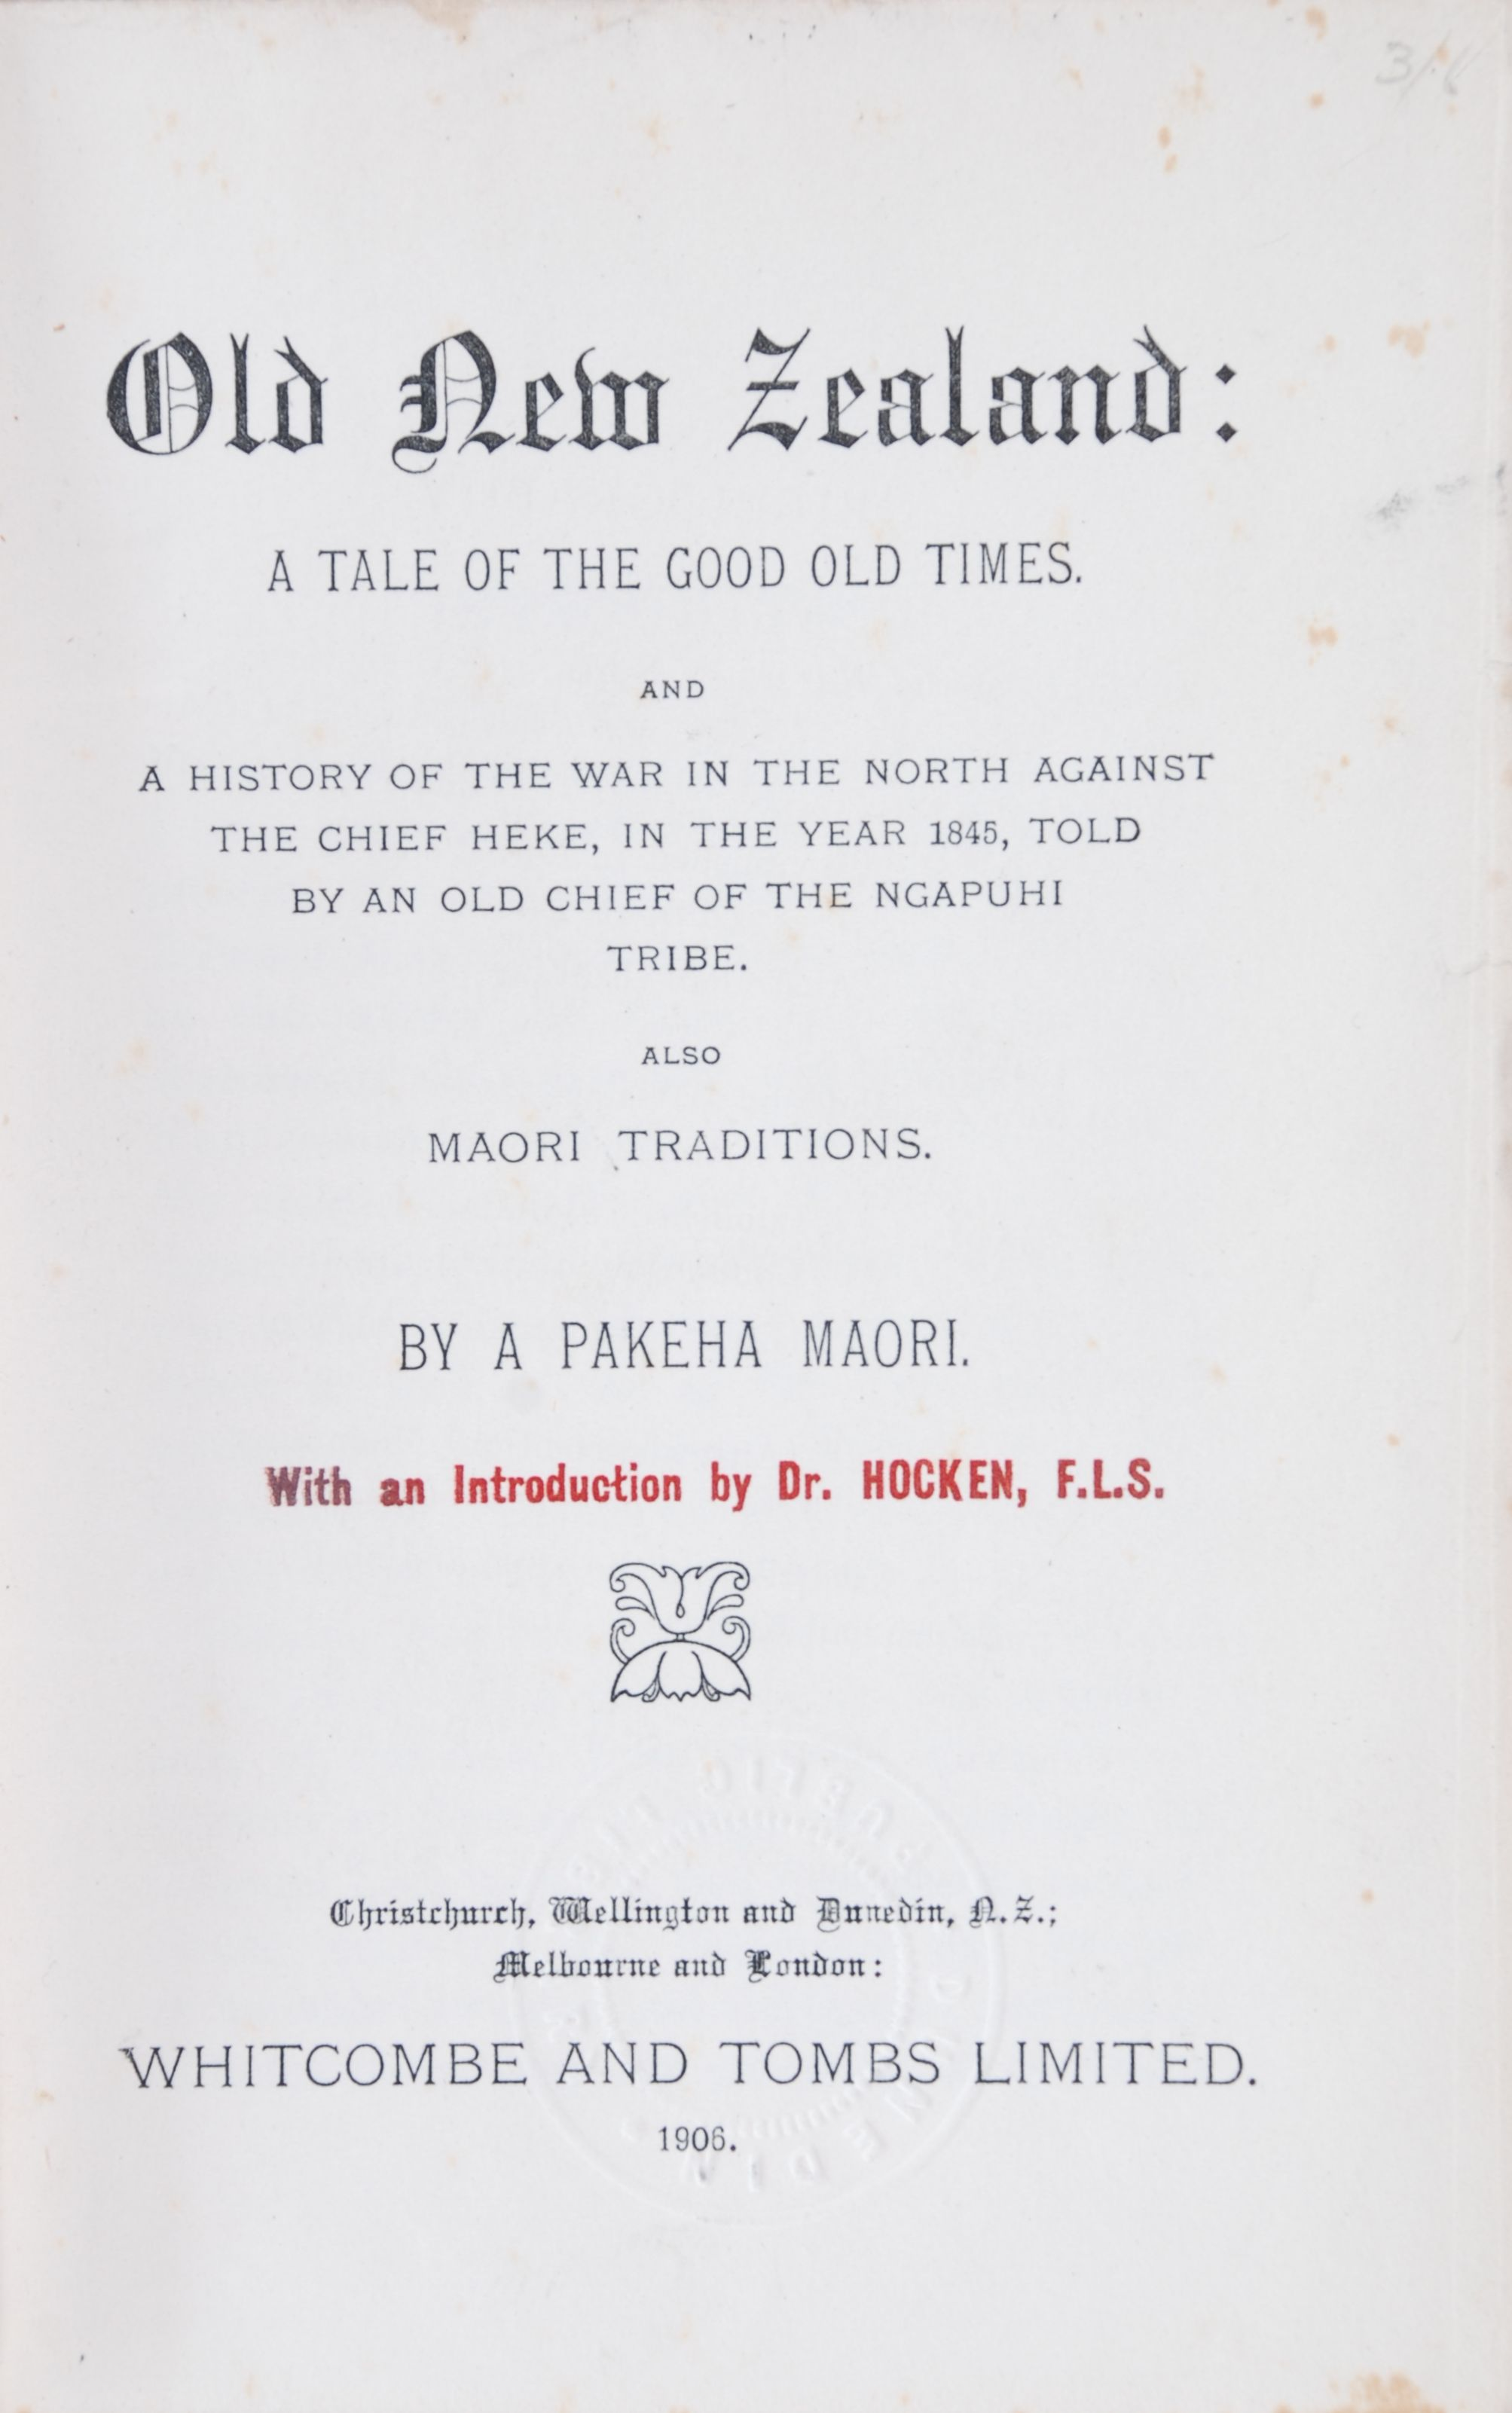 F. E. Maning. Old New Zealand: A tale of the good old times and a history of the war in the North against the chief Heke, in the year 1845, told by an old chief of the Ngapuhi tribe. Also Maori traditions. Christchurch, Wellington and Dunedin, N.Z.; Melbo